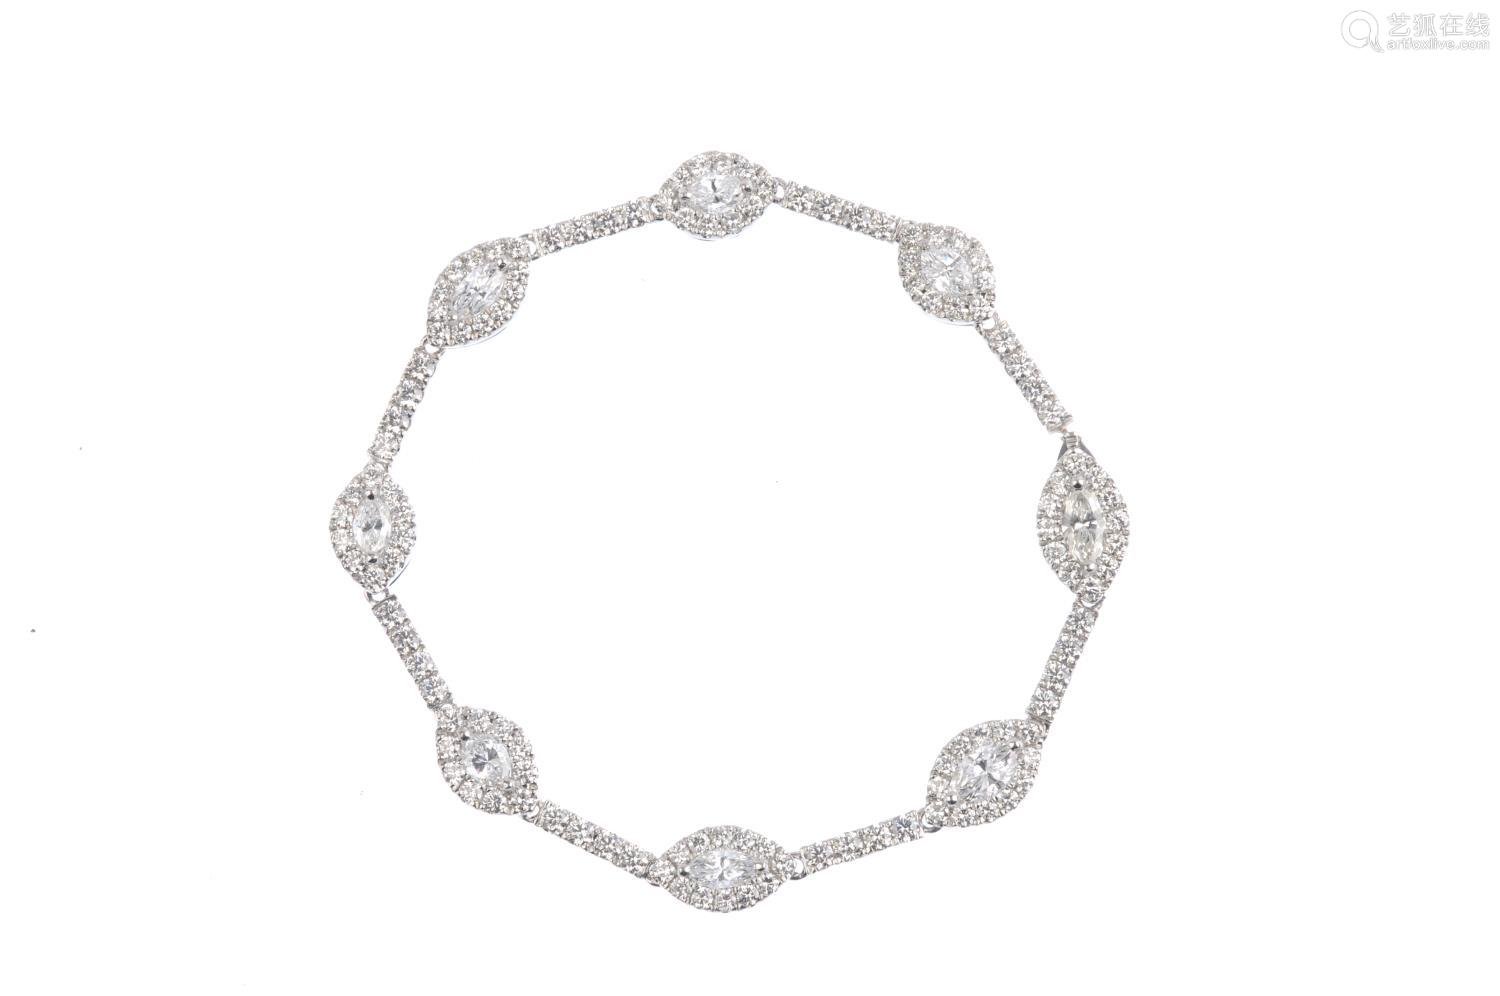 A diamond bracelet. Designed as a series of marquise-shape diamond links, each with brilliant-cut